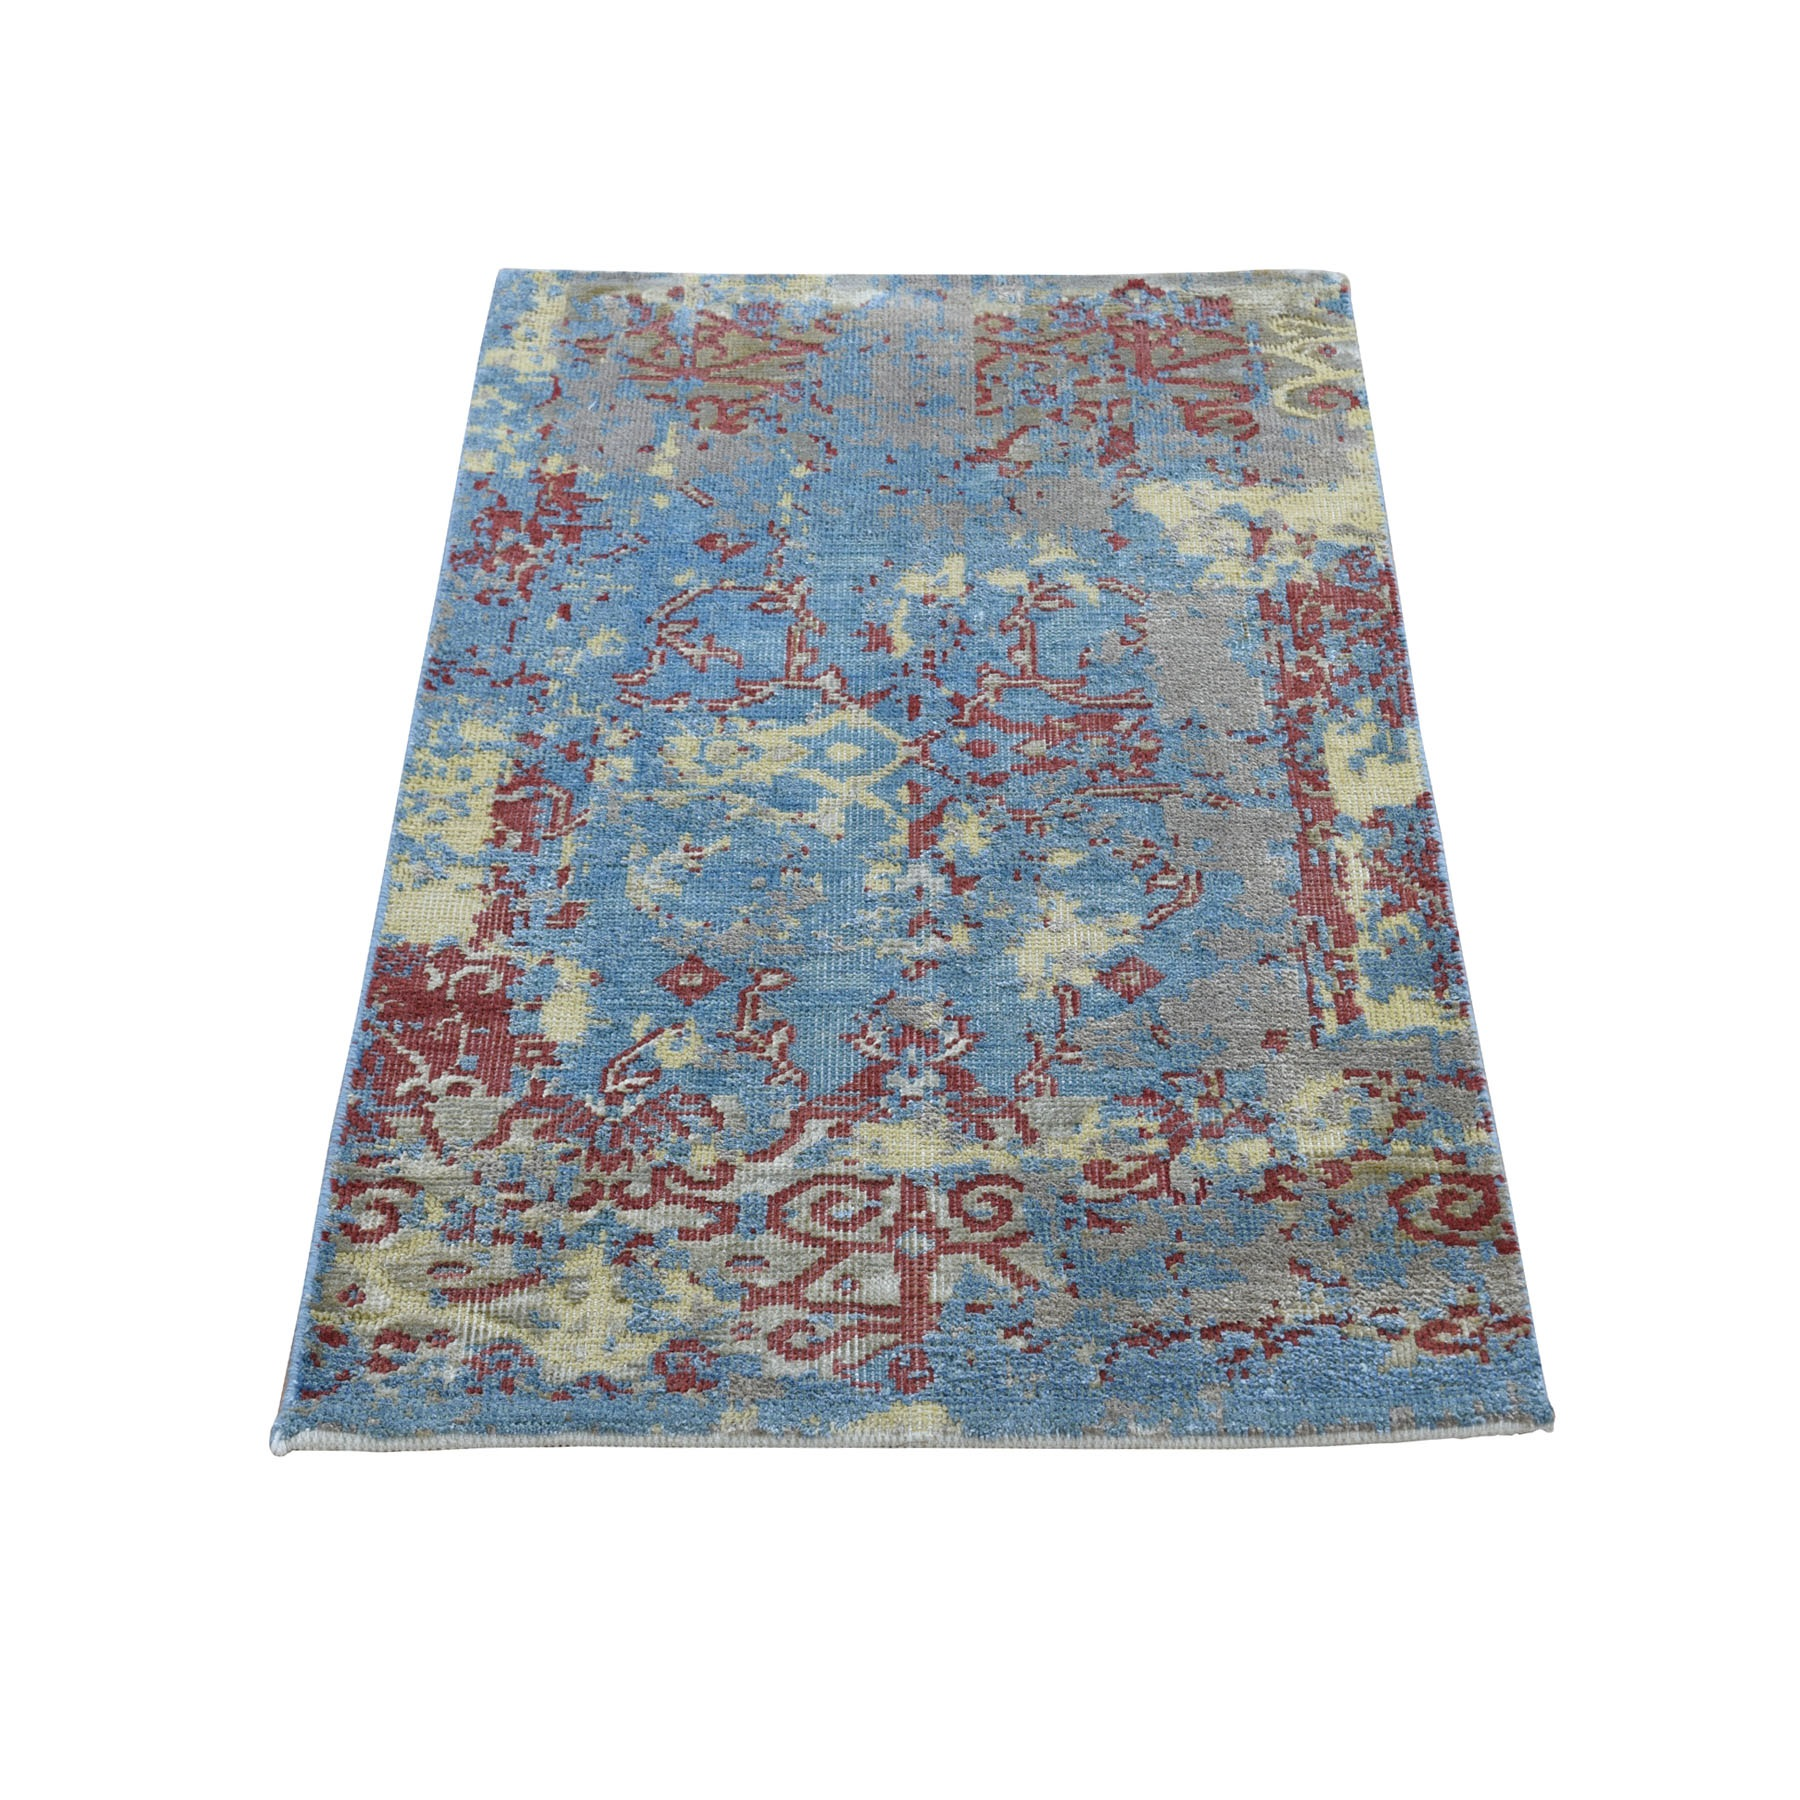 2'X3' Silk With Textured Wool Broken Design Hand Knotted Oriental Rug moad8a0a